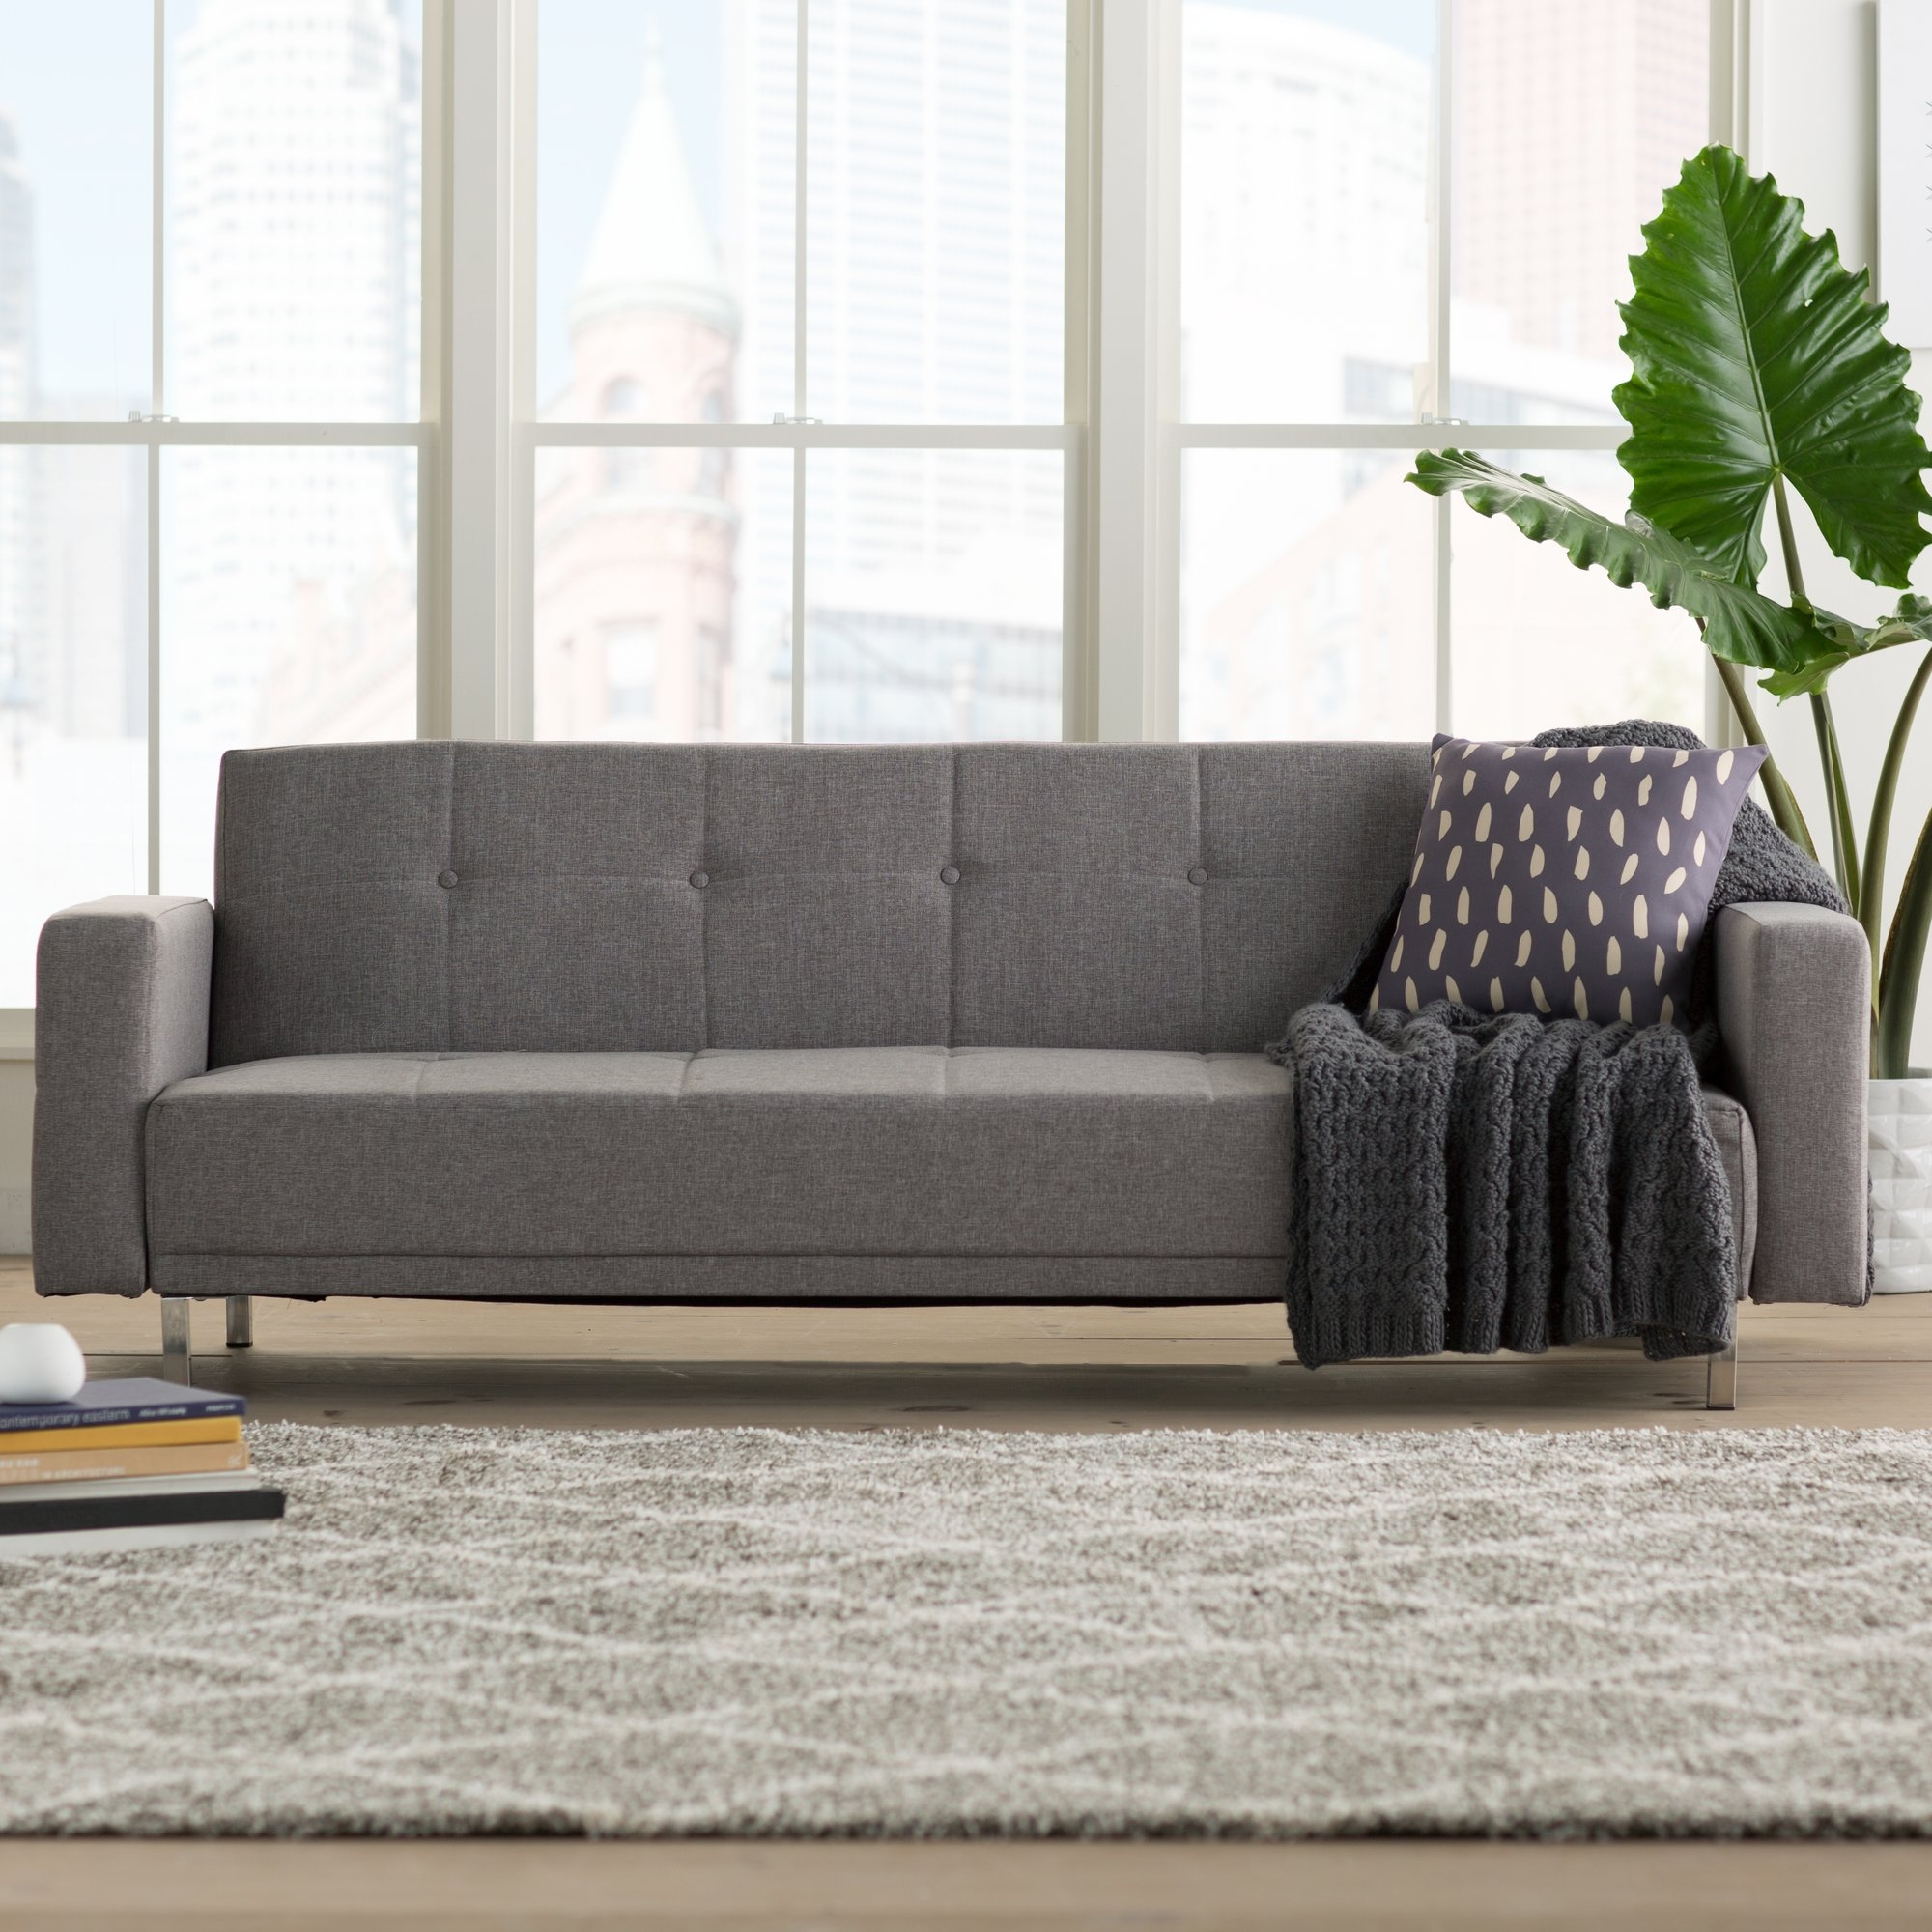 Extra Deep Sofa Wayfair With 70 Sleeper Sofa (Image 11 of 15)